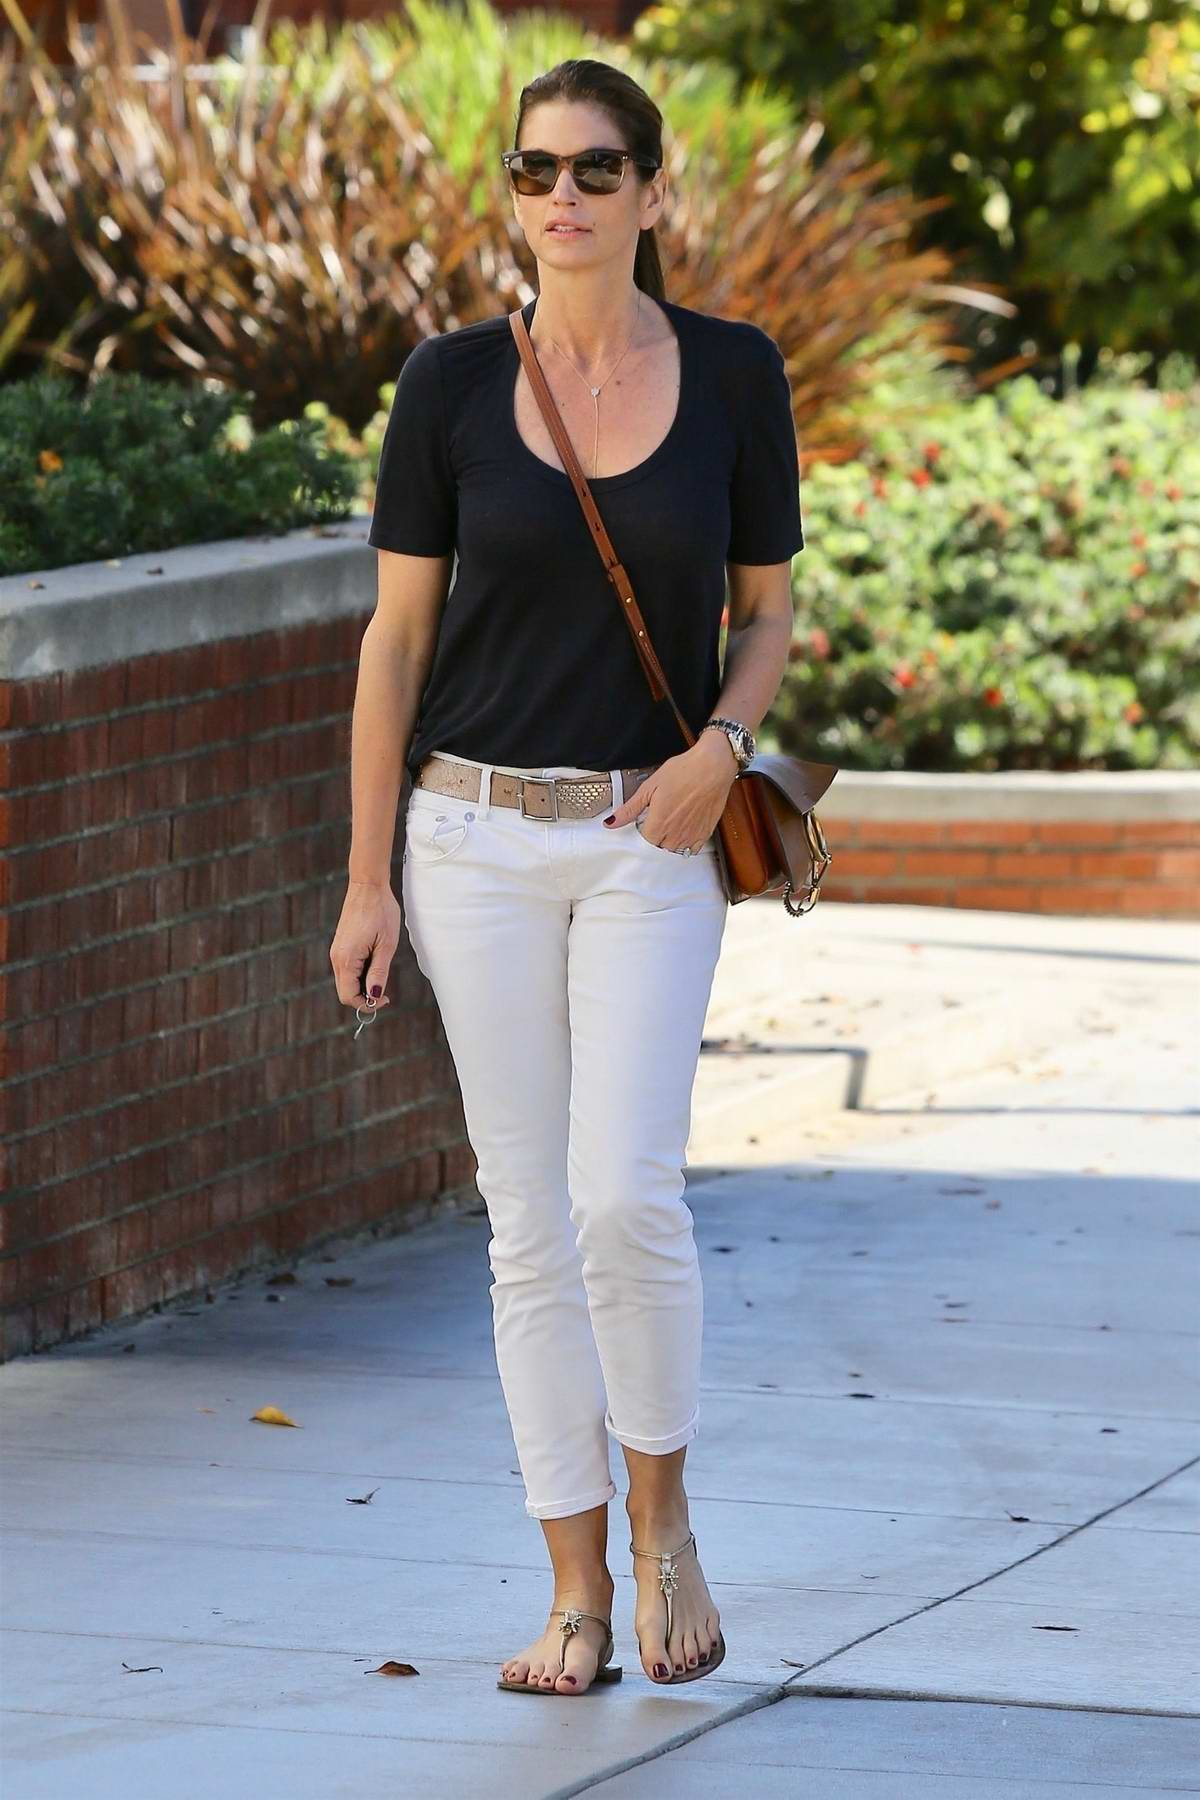 Cindy Crawford in a blue tee and white jeans seen running errands in Santa Monica, California